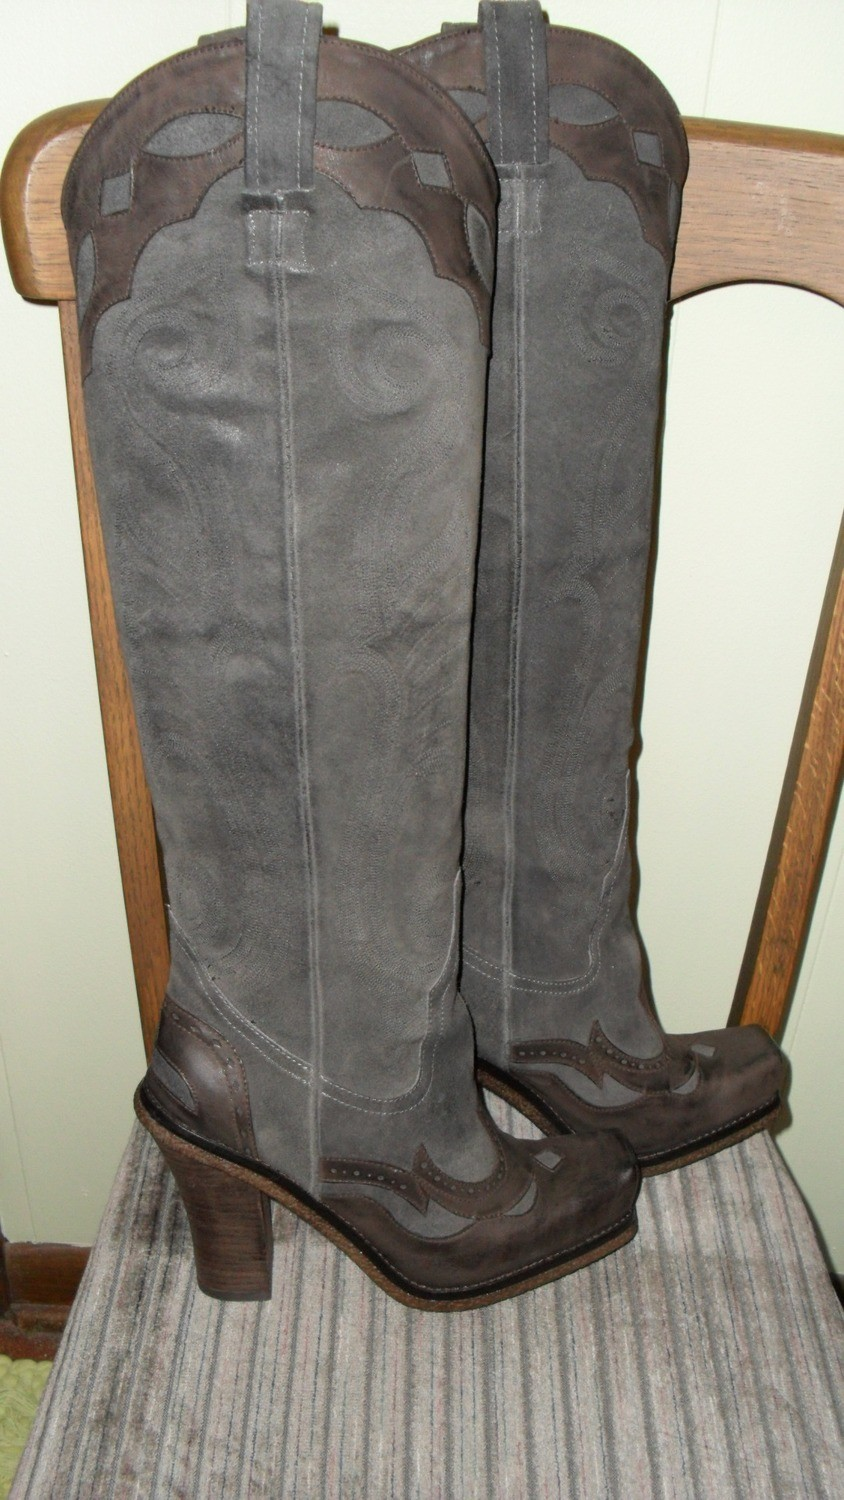 No competition for these western style Donald J. Pliner boots!